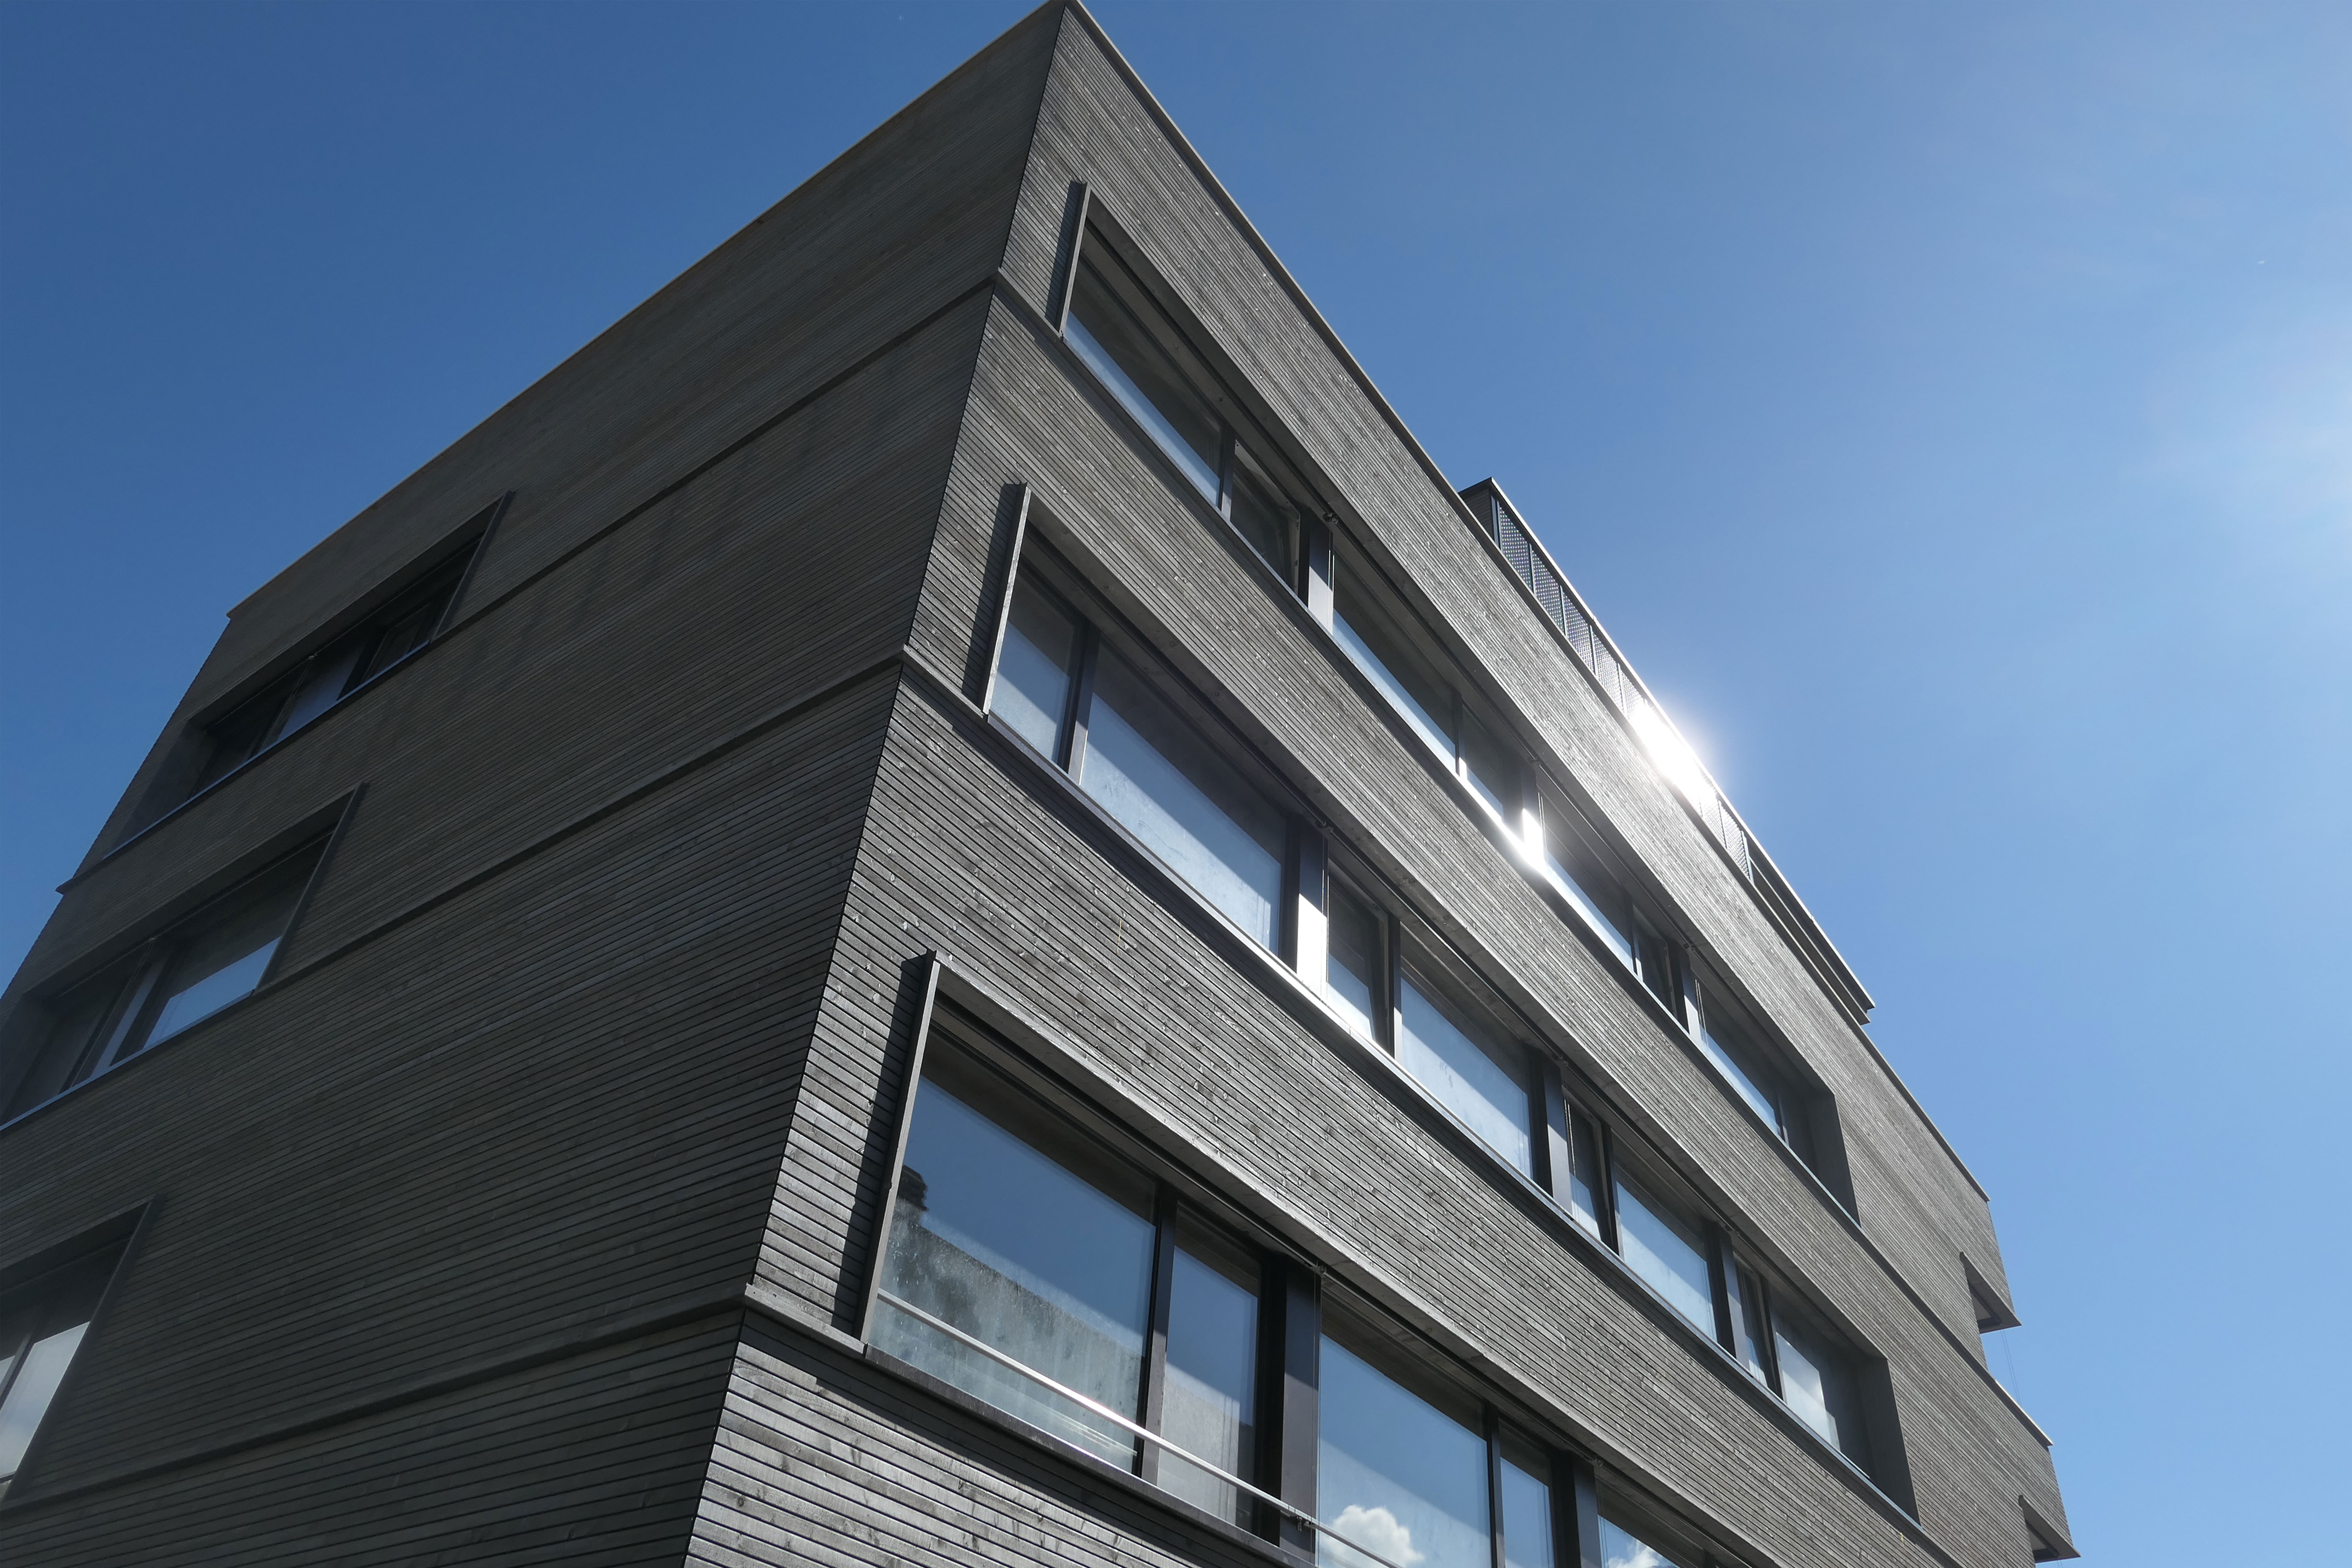 Sion Bois Solaire Holzfassade